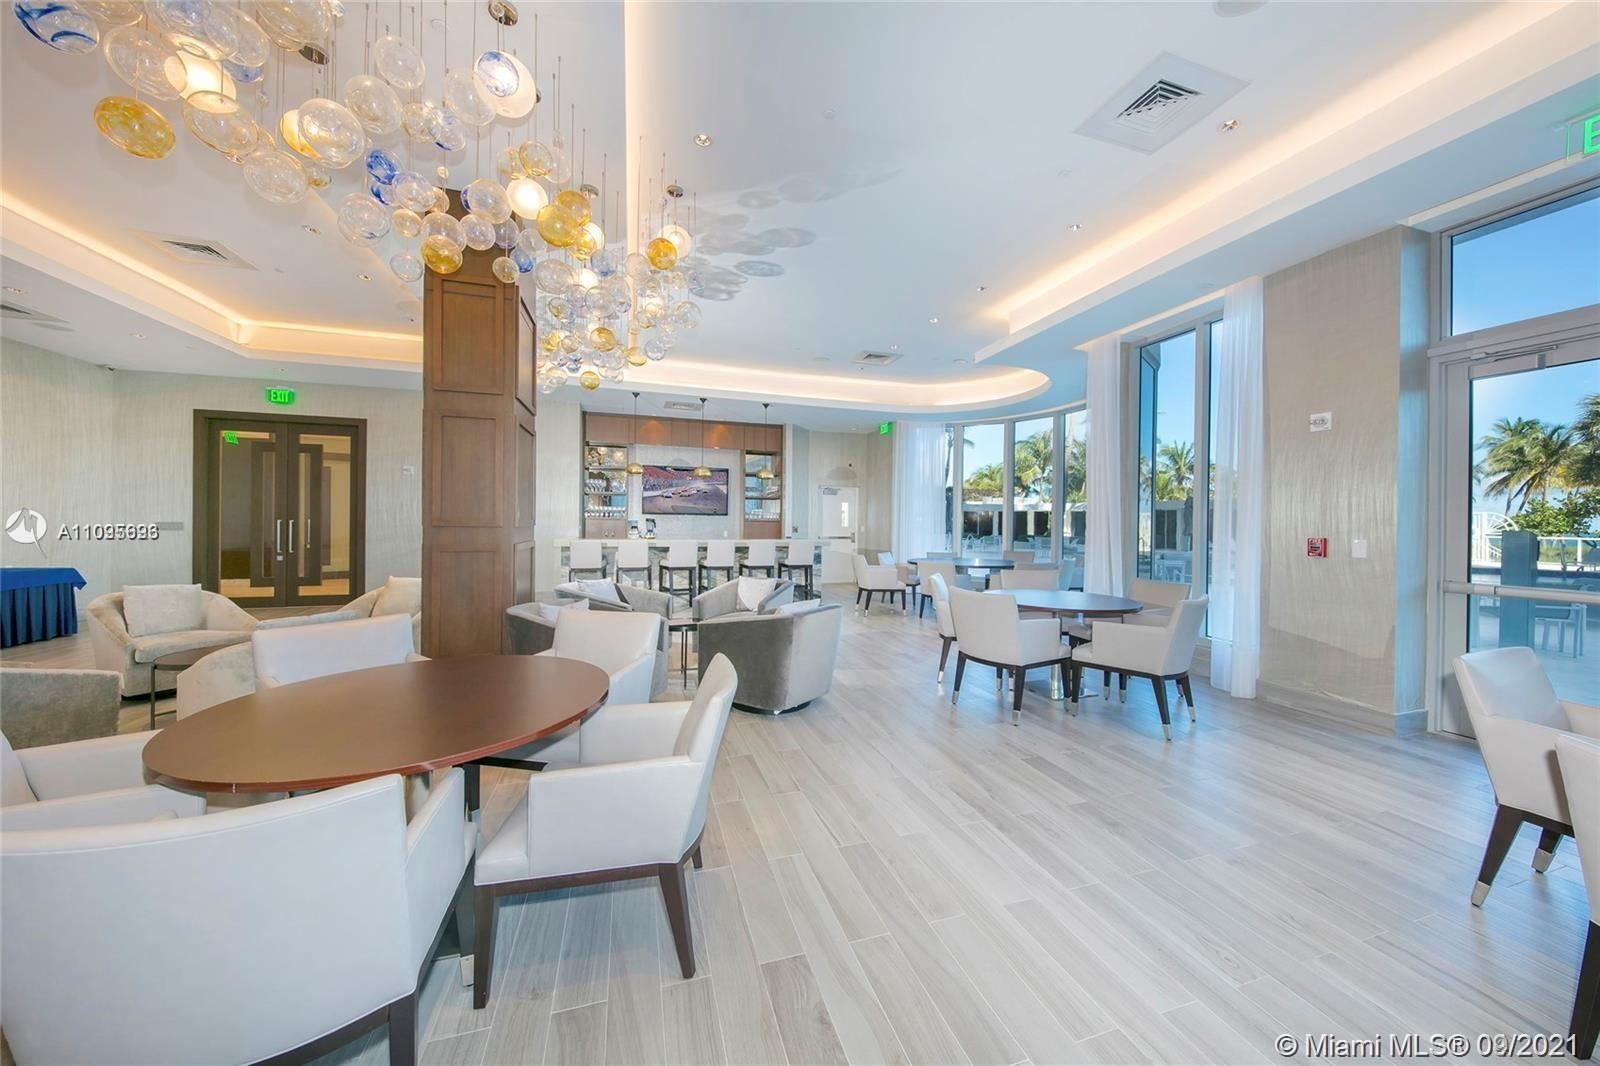 Photo of 10155 Collins Ave #1404, Bal Harbour, FL 33154 (MLS # A11095693)